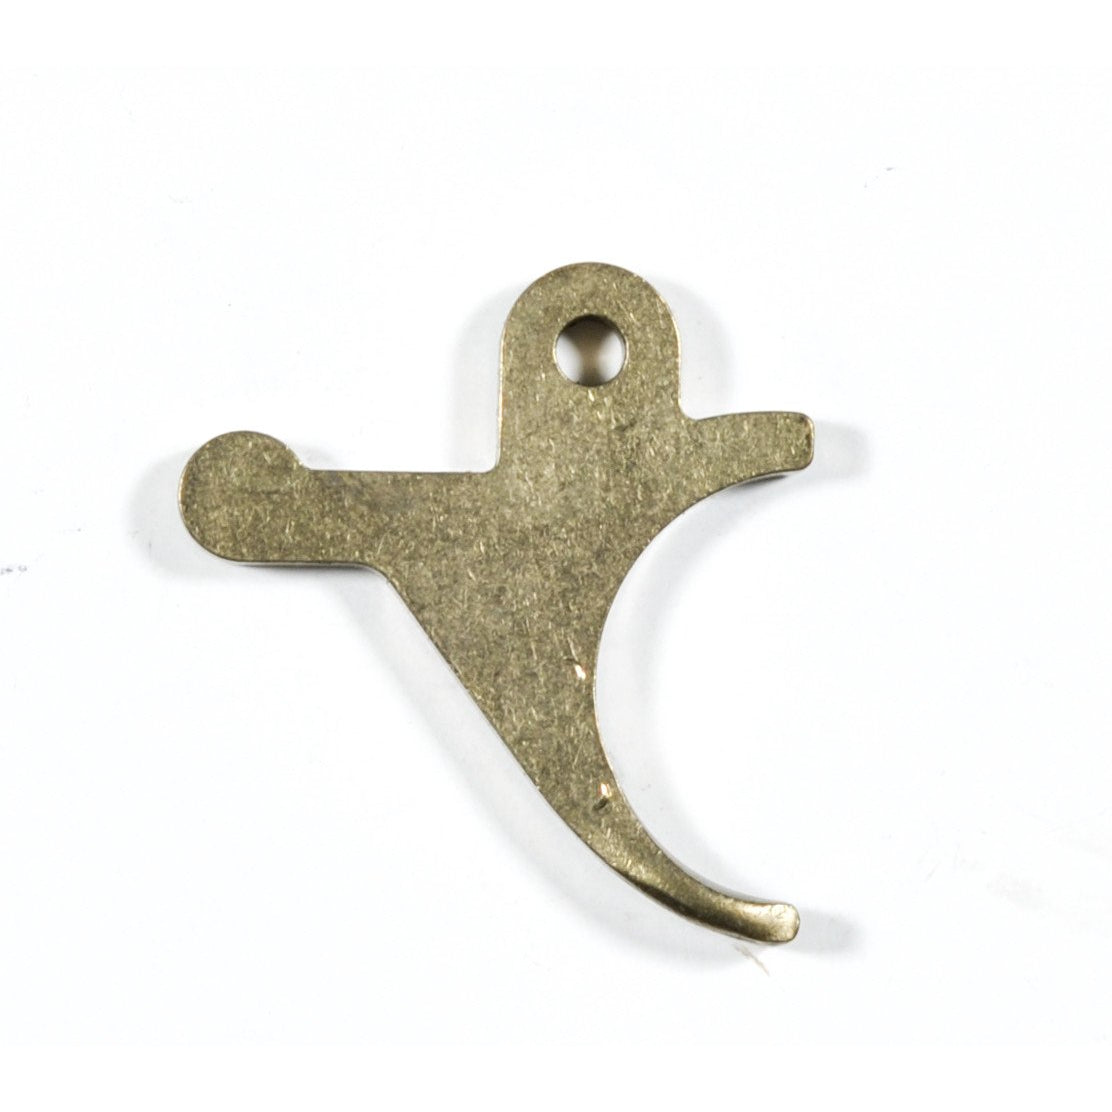 Crosman Mod.2240 Trigger,Gunsmith's Parts- Canada Brass